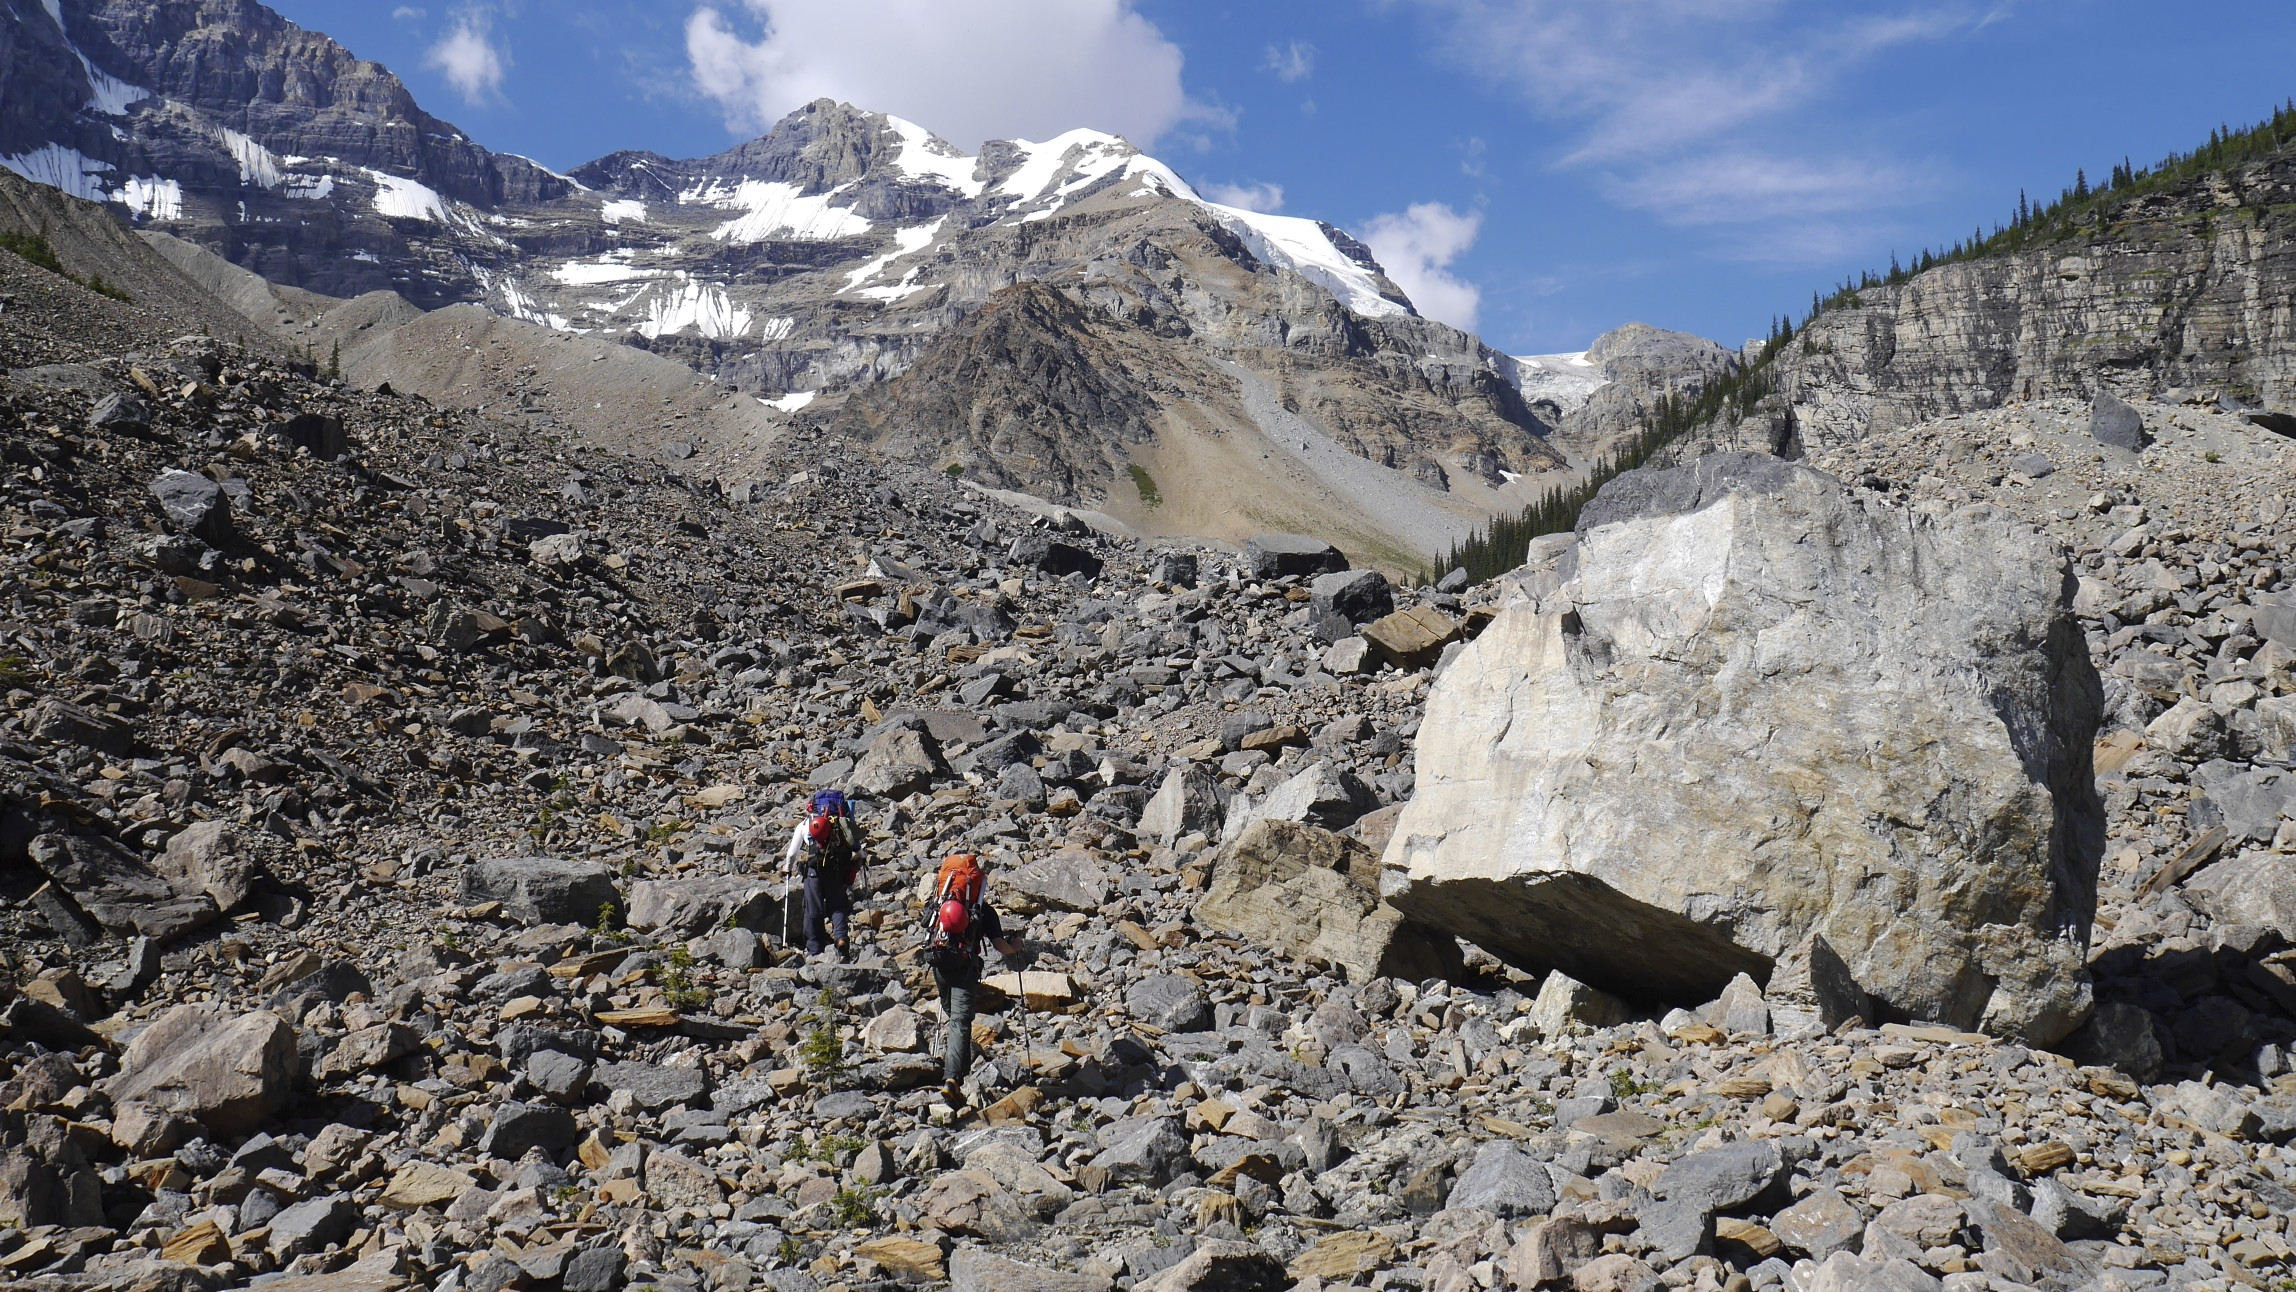 En route to Mt. Wooly and Mt. Diadem base camp